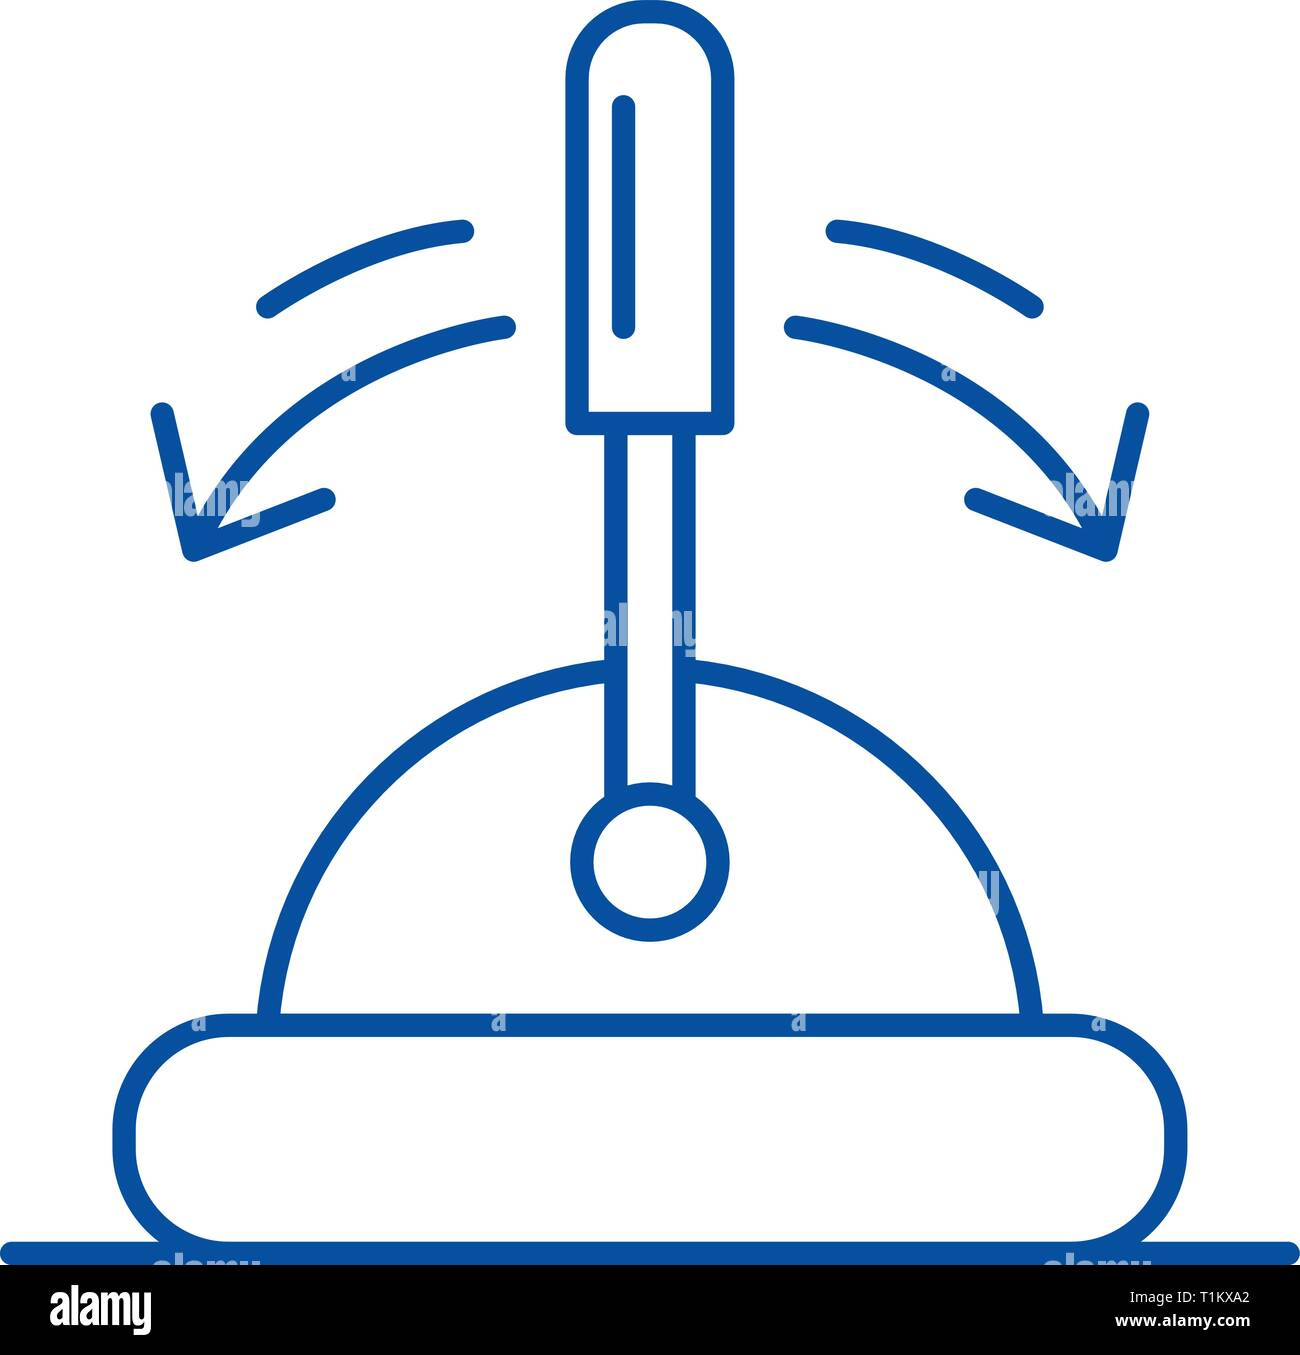 Toggle switch line icon concept. Toggle switch flat  vector symbol, sign, outline illustration. - Stock Image